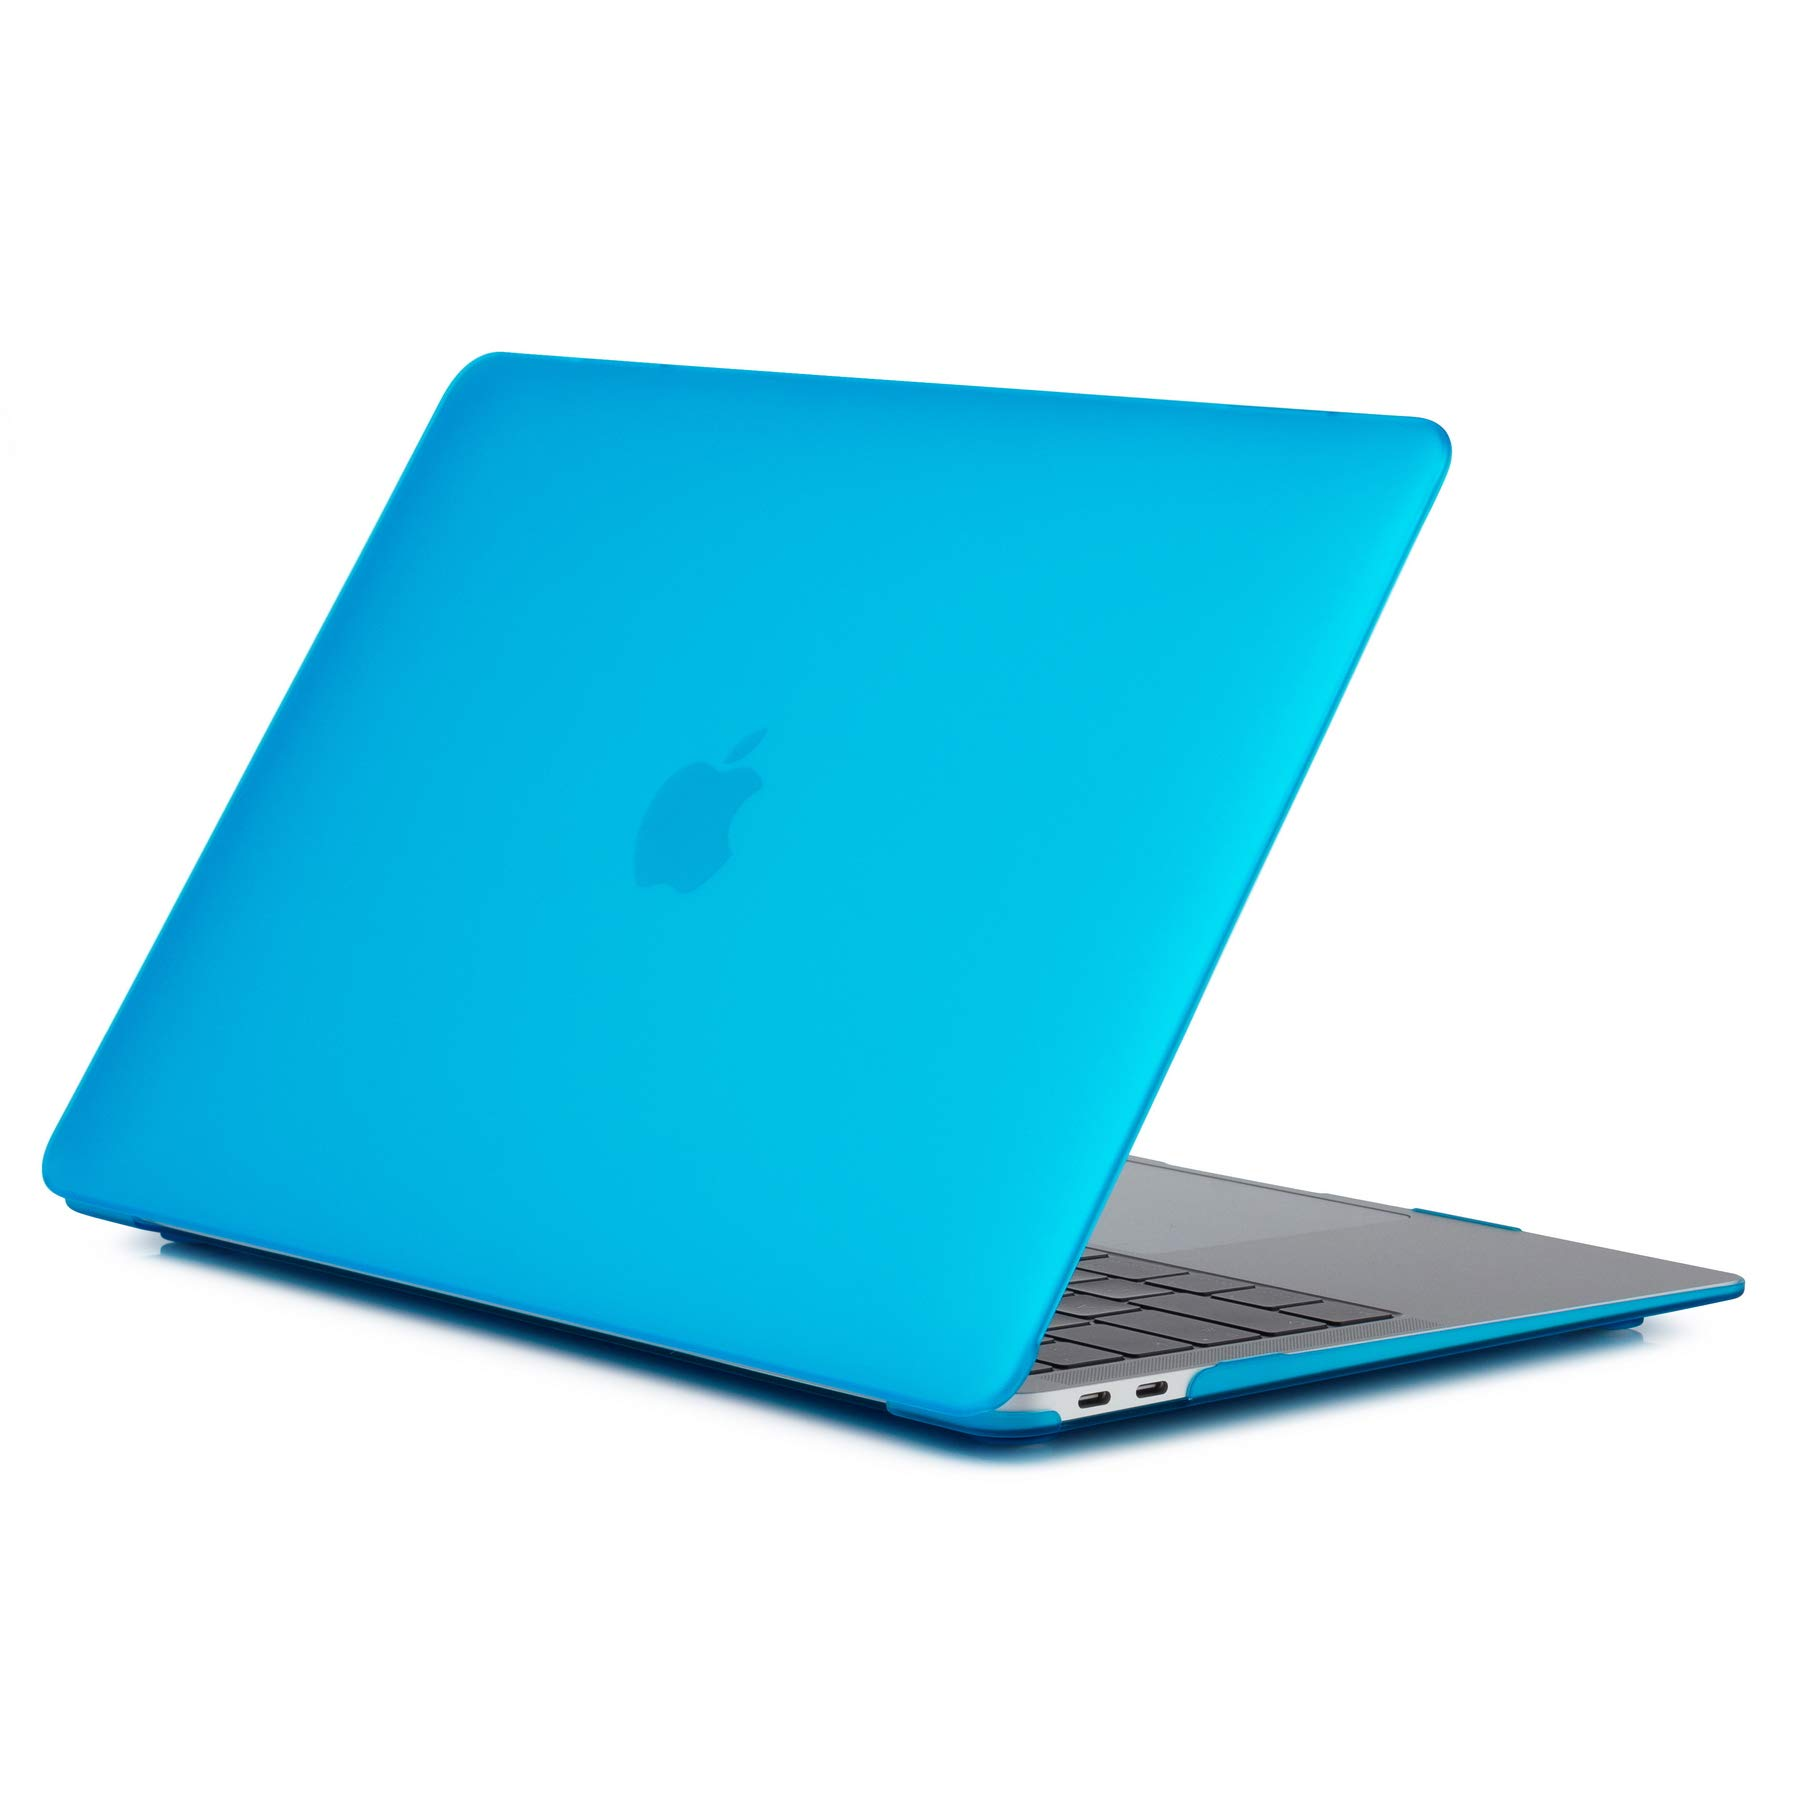 Se7enline New MacBook Air 2018 Case 13 inch Frosted Plastic Hard Shell Laptop Carrying Case Cover for MacBook Air 13-Inch with Retina Display with Touch ID Model A1932 2018/2019 Version, Aqua Blue